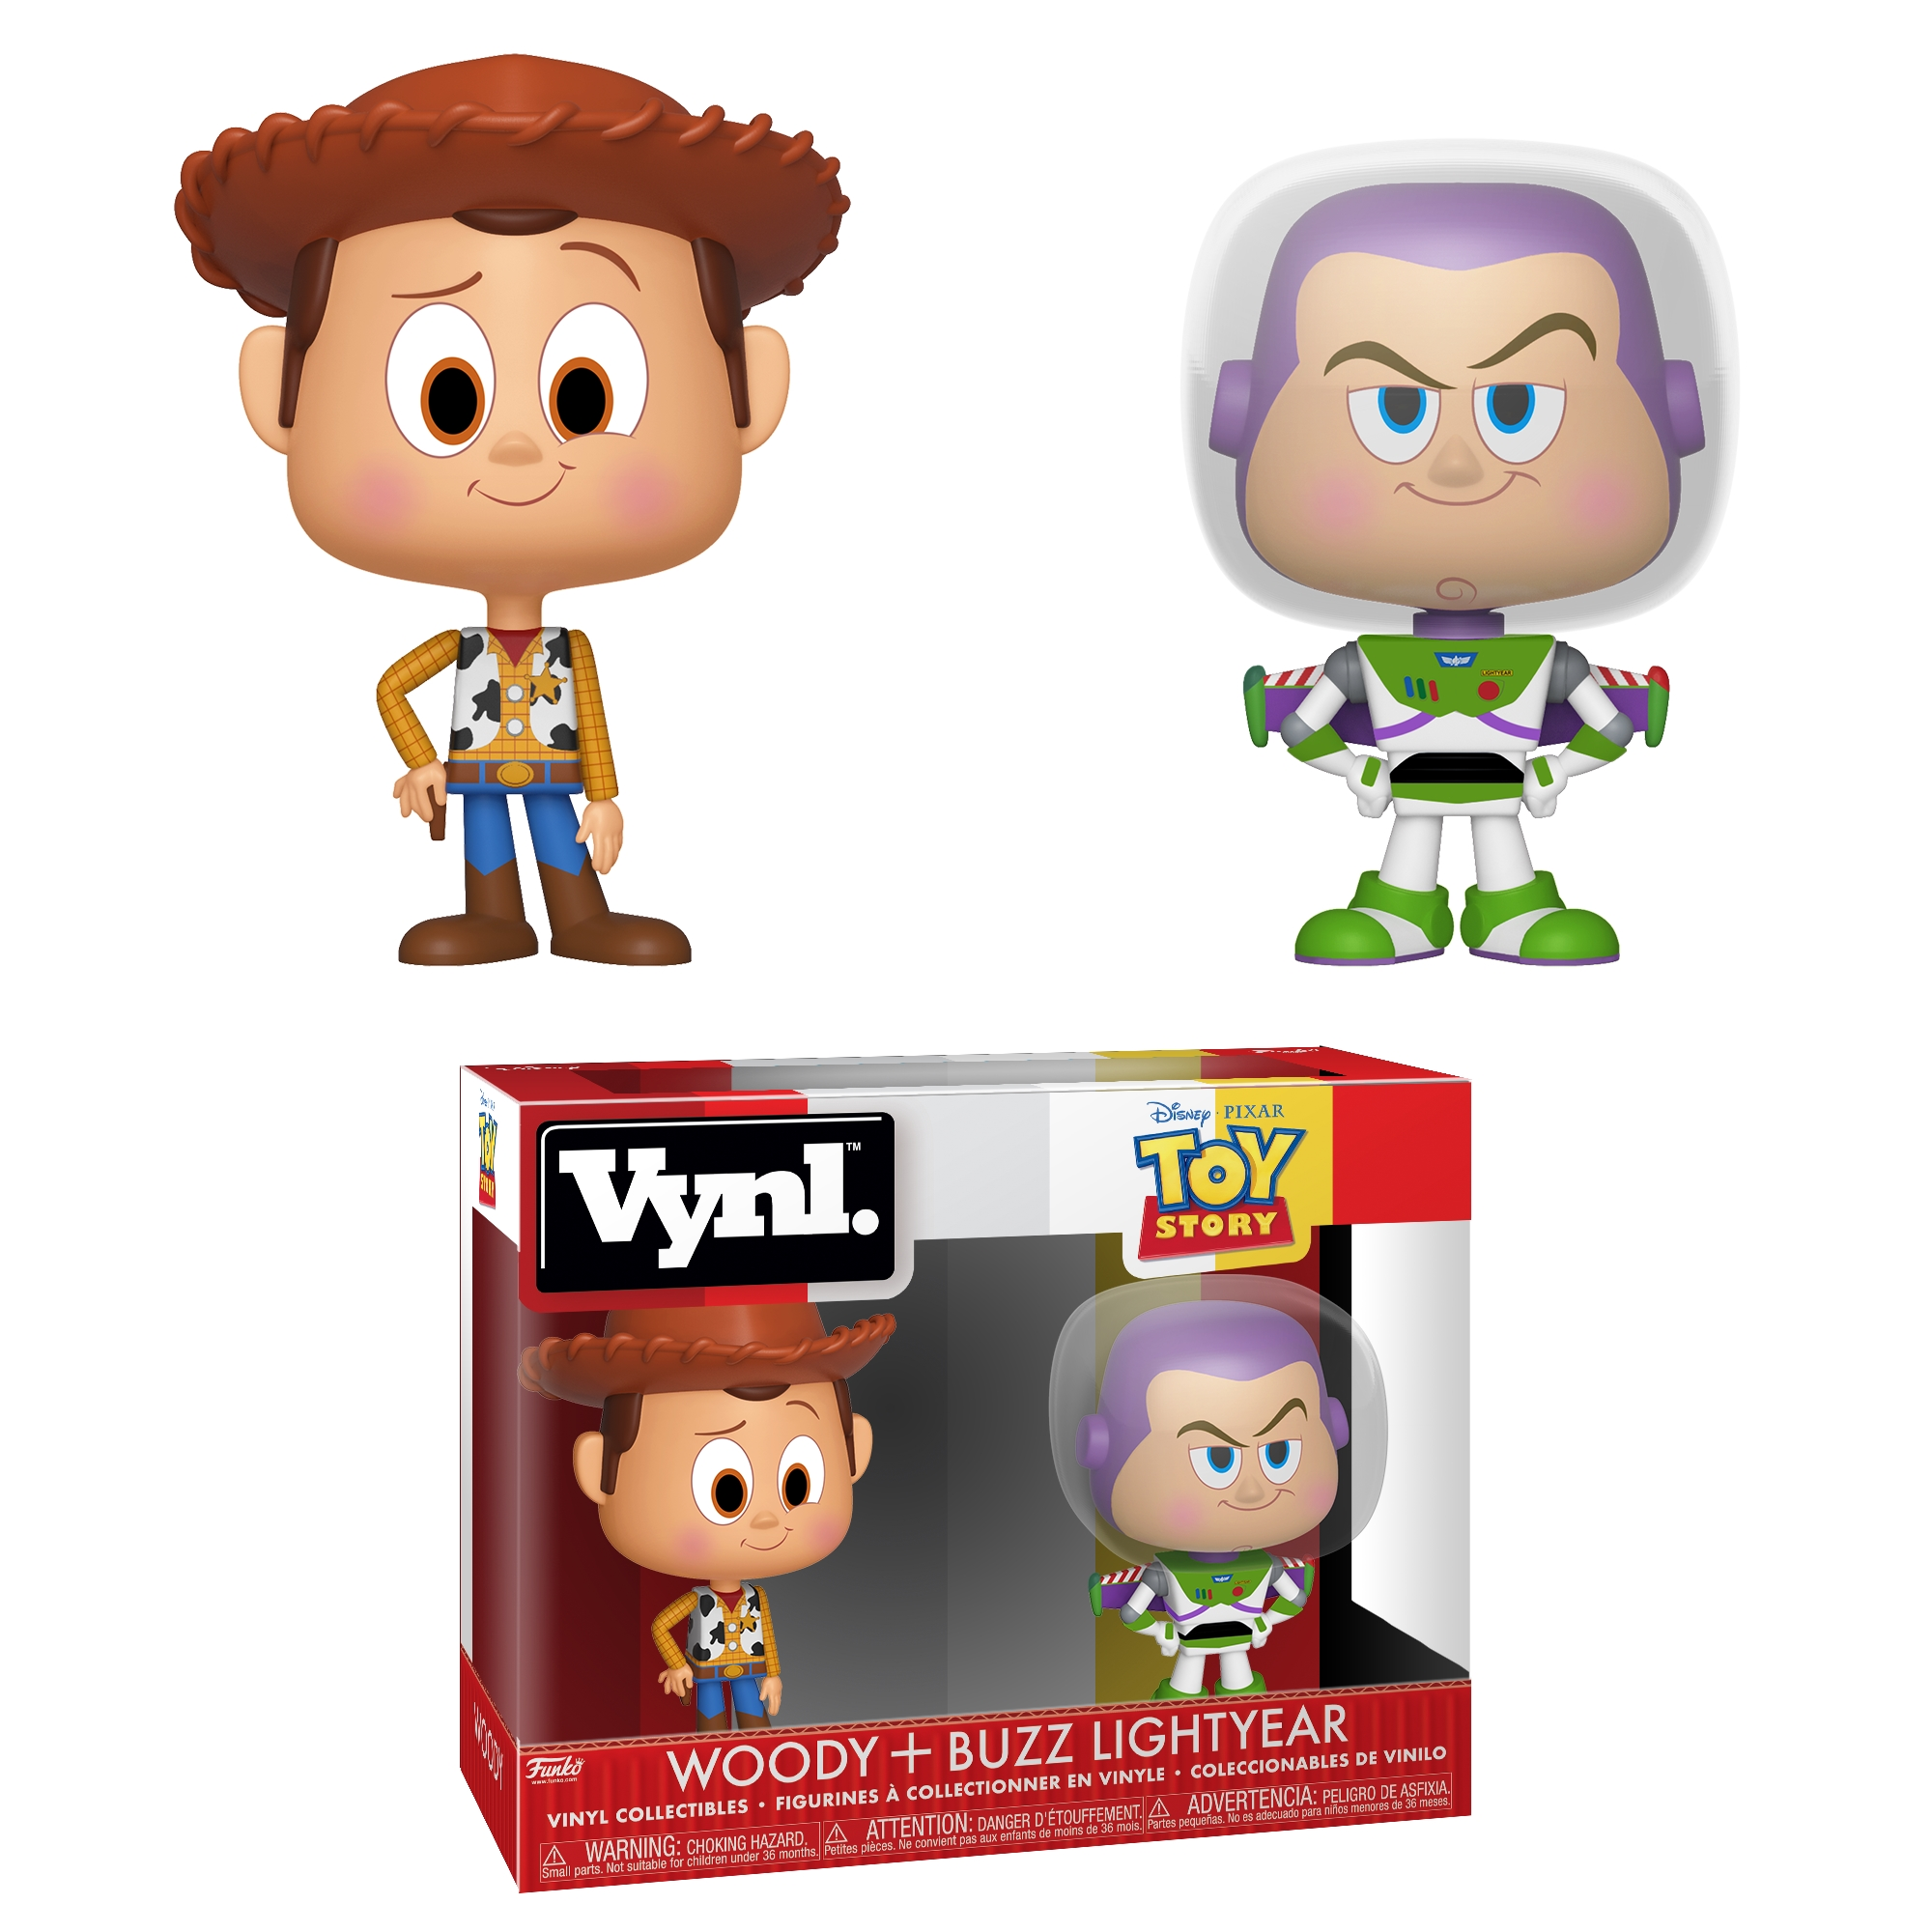 Picture of Toy Story - Woody and Buzz Vinyl figures